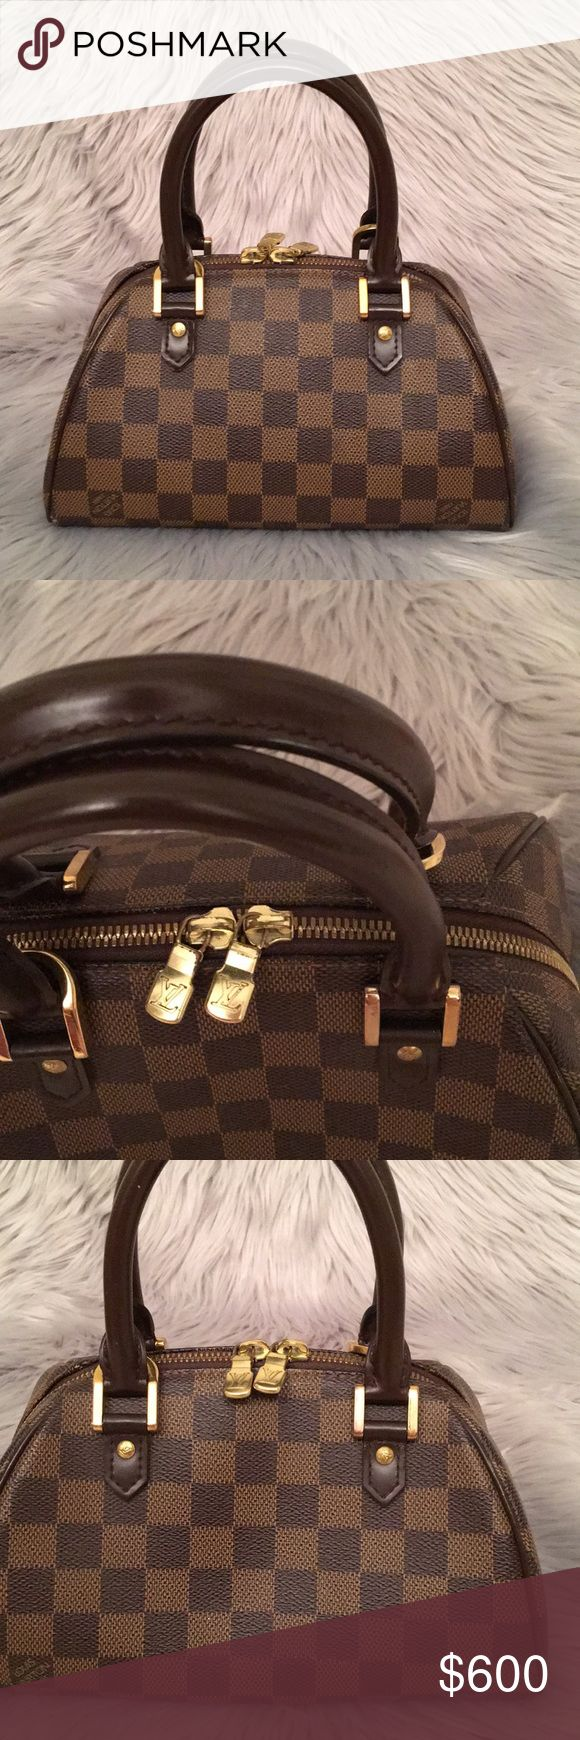 Louis Vuitton Ribera small Louis Vuitton Ribera small in great condition. Very minor flaws as pictured. Offers accepted! 9x6 x5 Louis Vuitton Bags